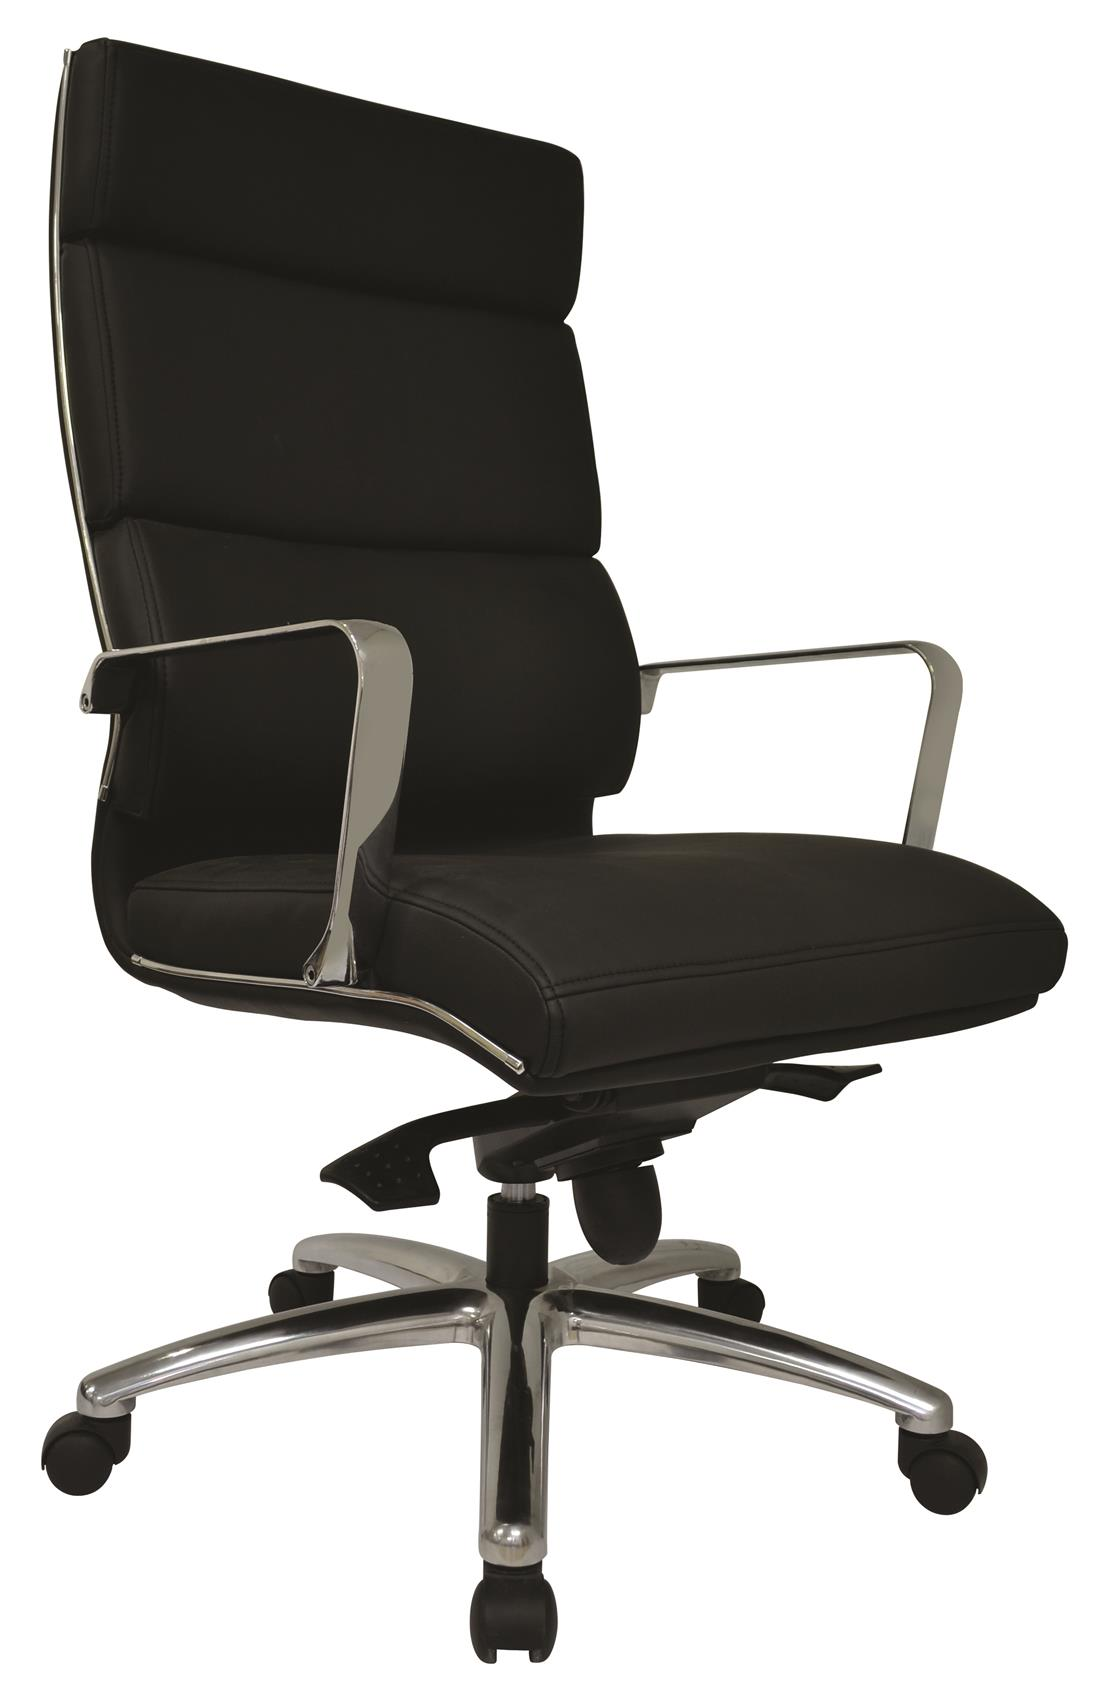 office chair malaysia herman miller setu chairs price in ikea home